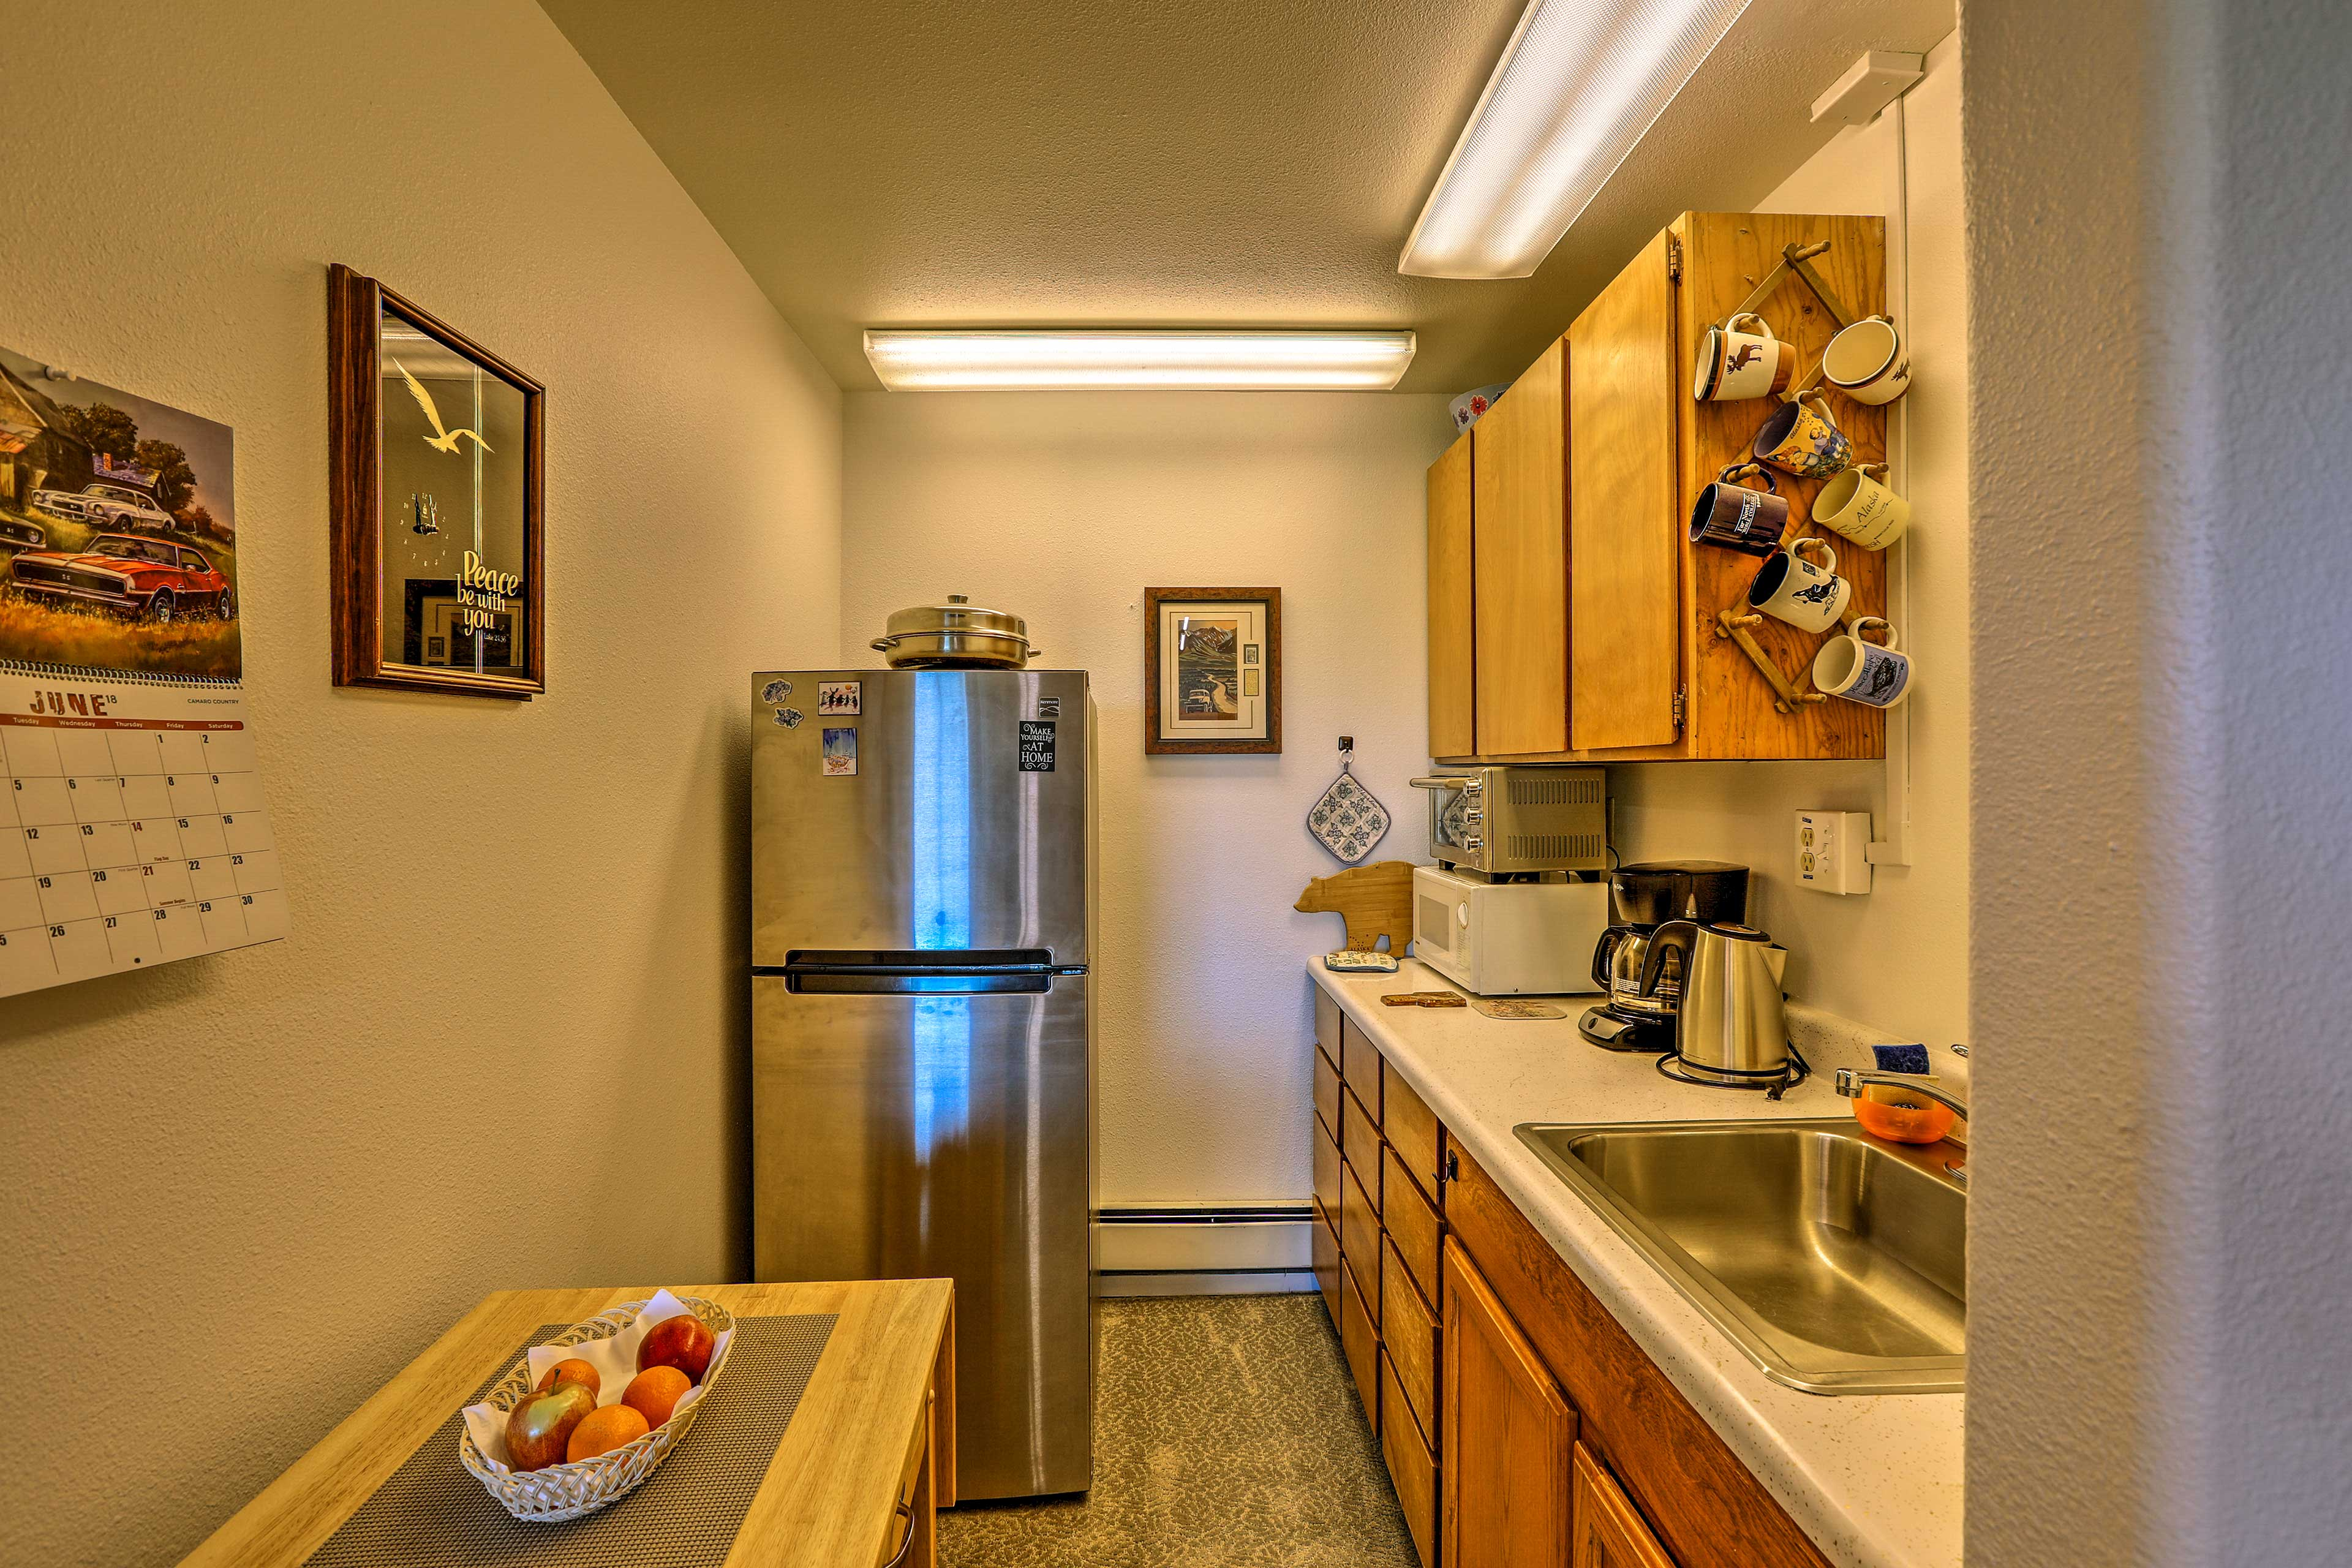 The well-equipped kitchen has a fridge, toaster oven, and coffee maker.